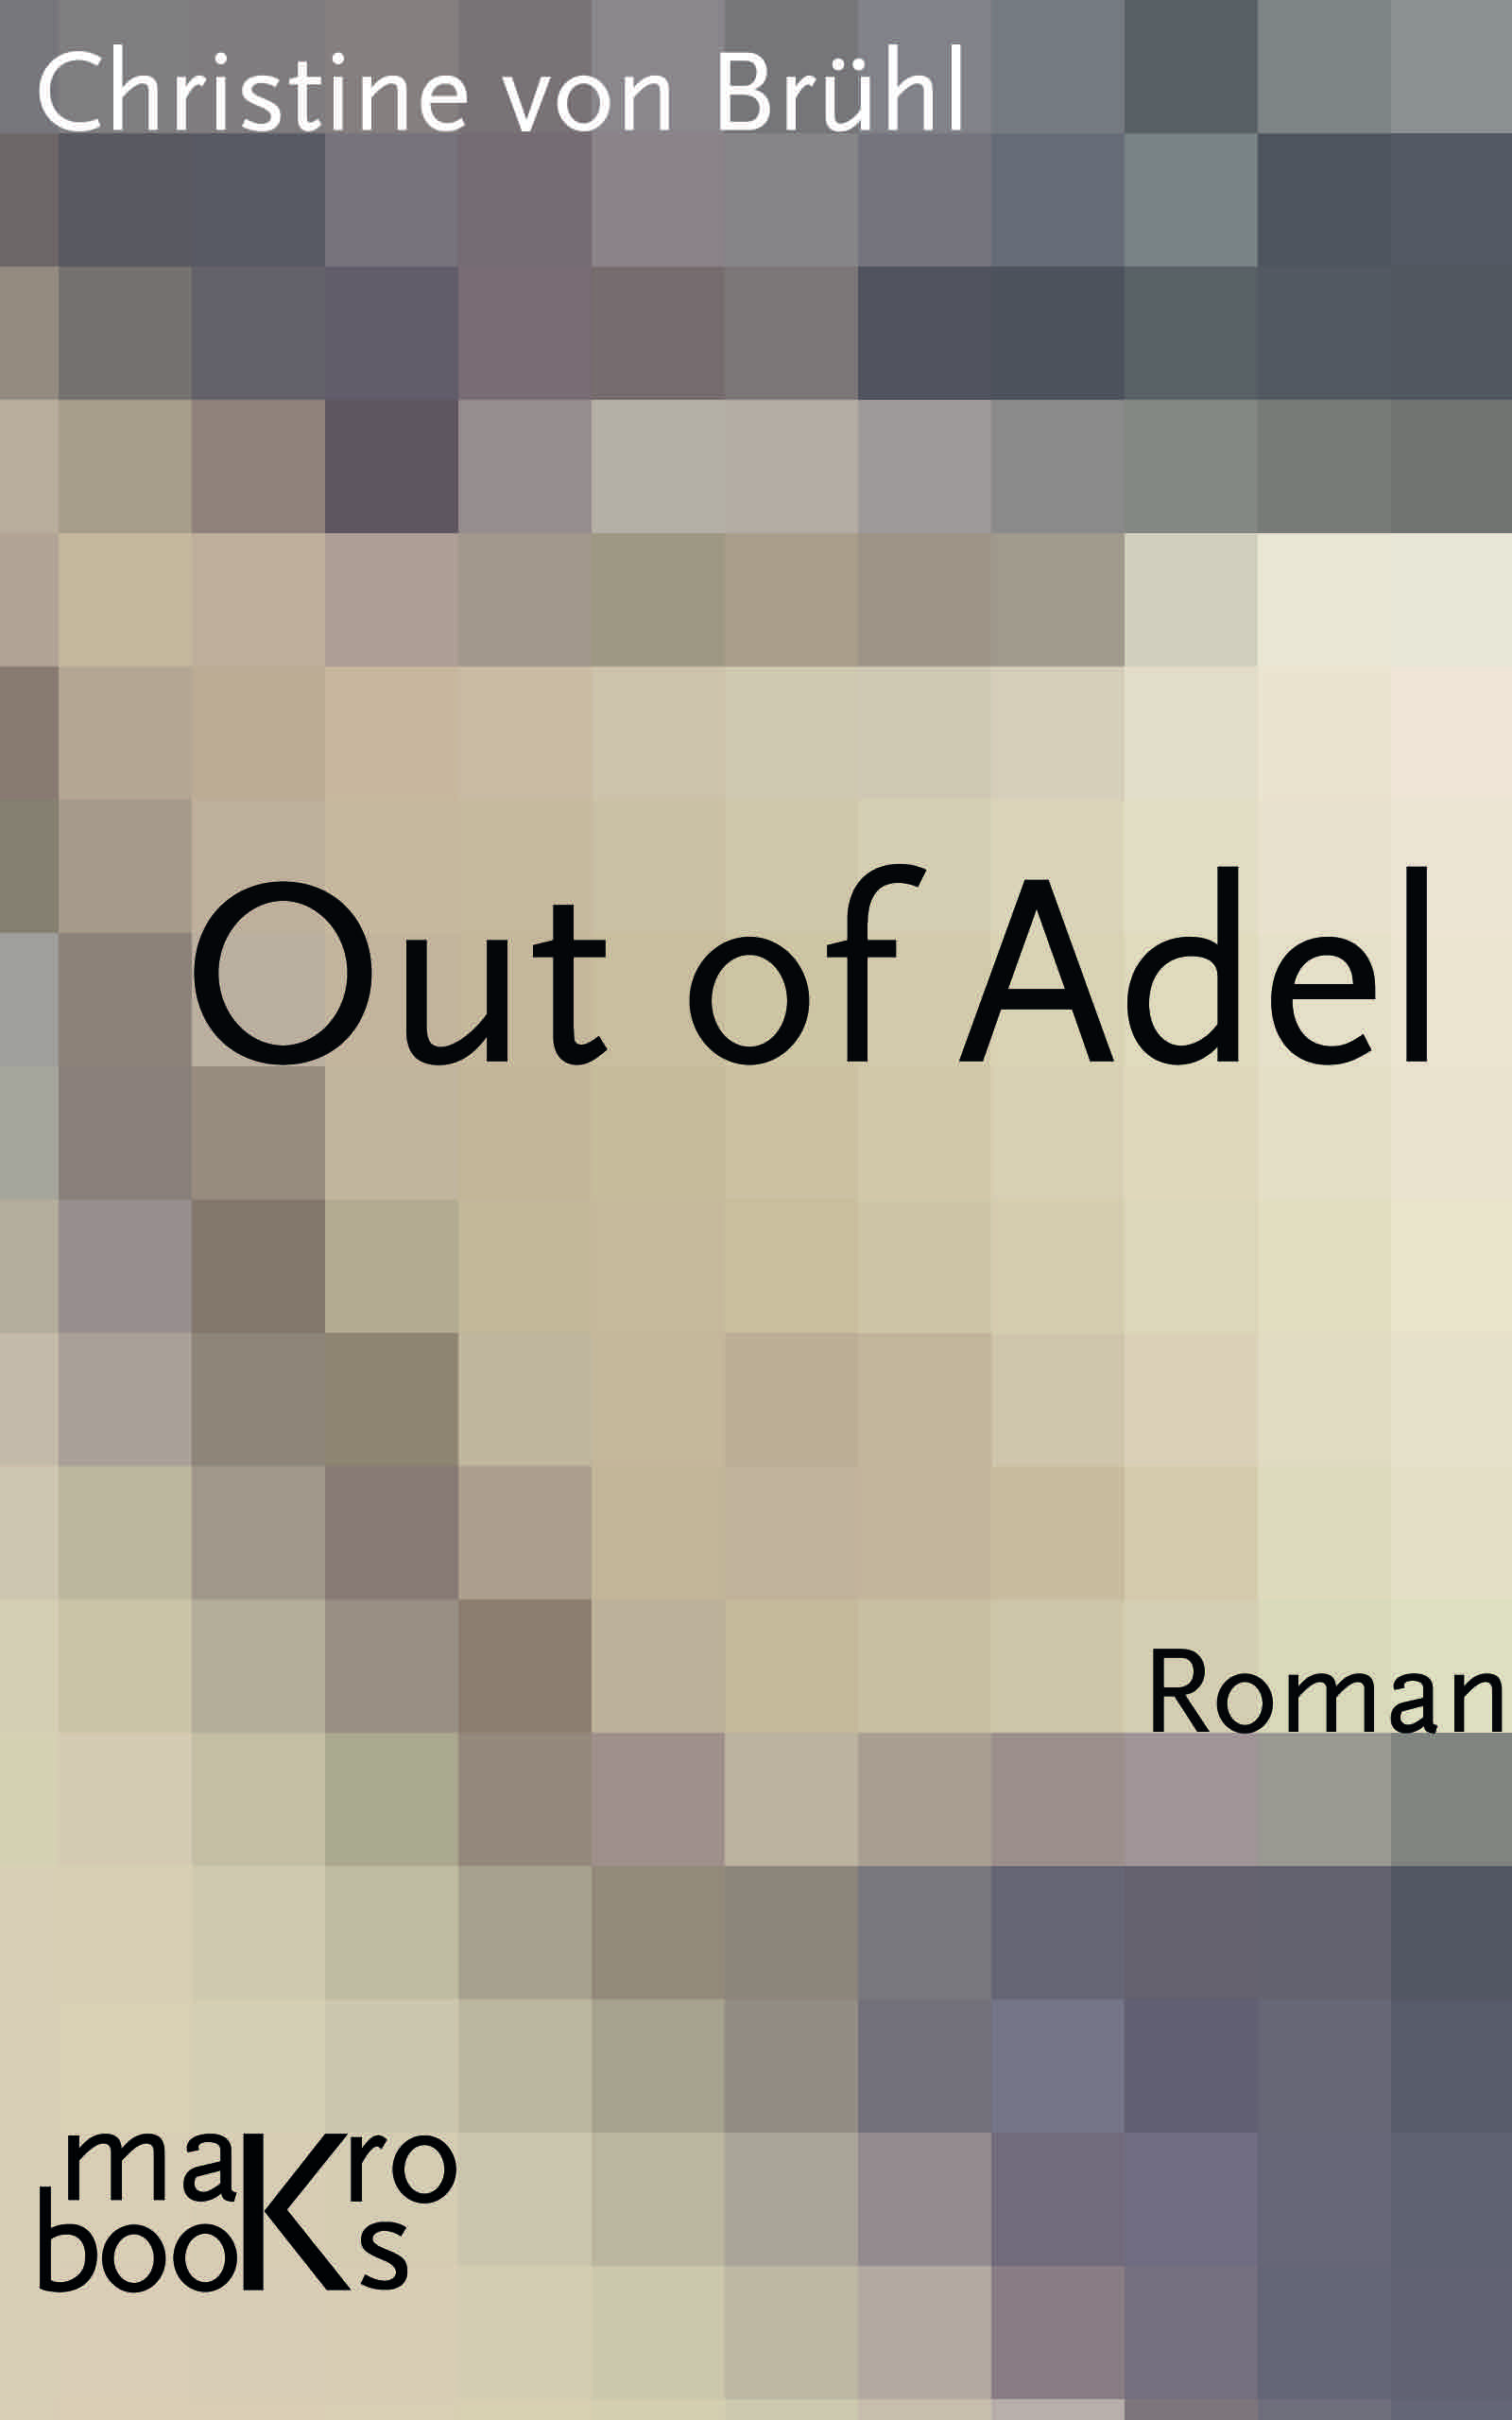 http://www.ebook.de/de/product/23922316/christine_bruehl_out_of_adel.html?searchId=275416992